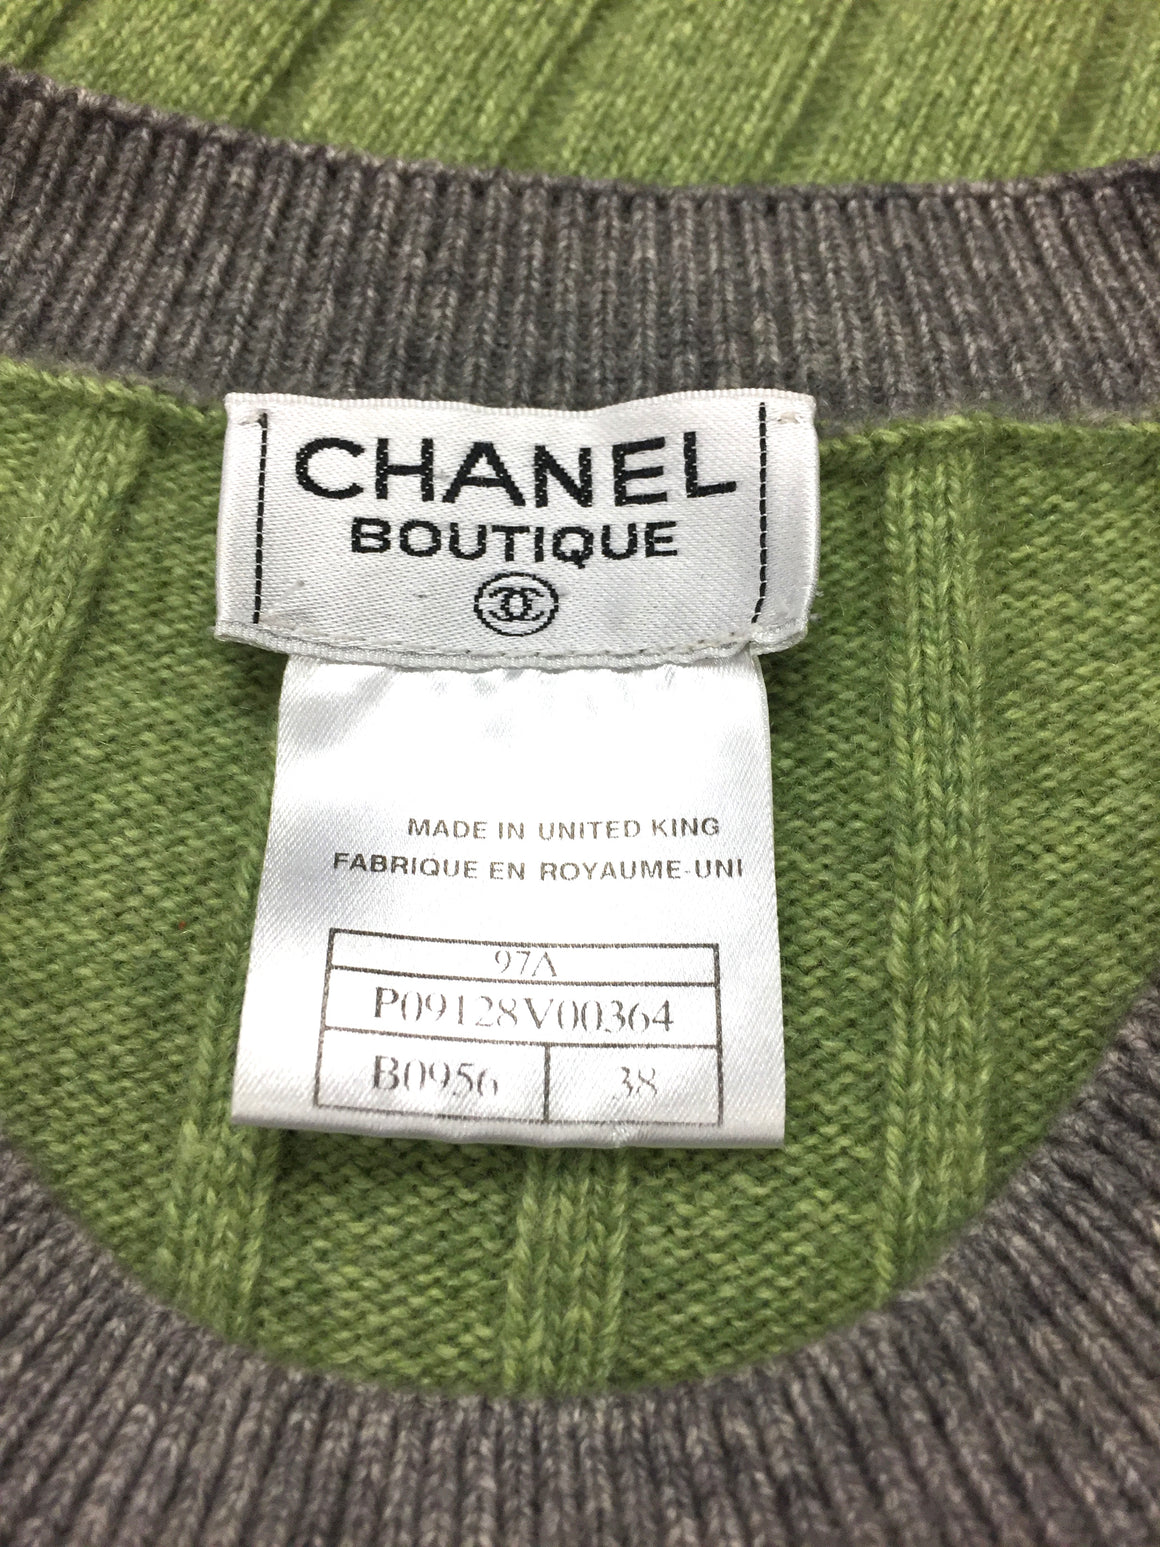 bisbiz.com CHANEL Green Rib-Knitted Cashmere Gray Trim Short Sleeve Sweater Top Size: FR 38 / US6 - Bis Luxury Resale